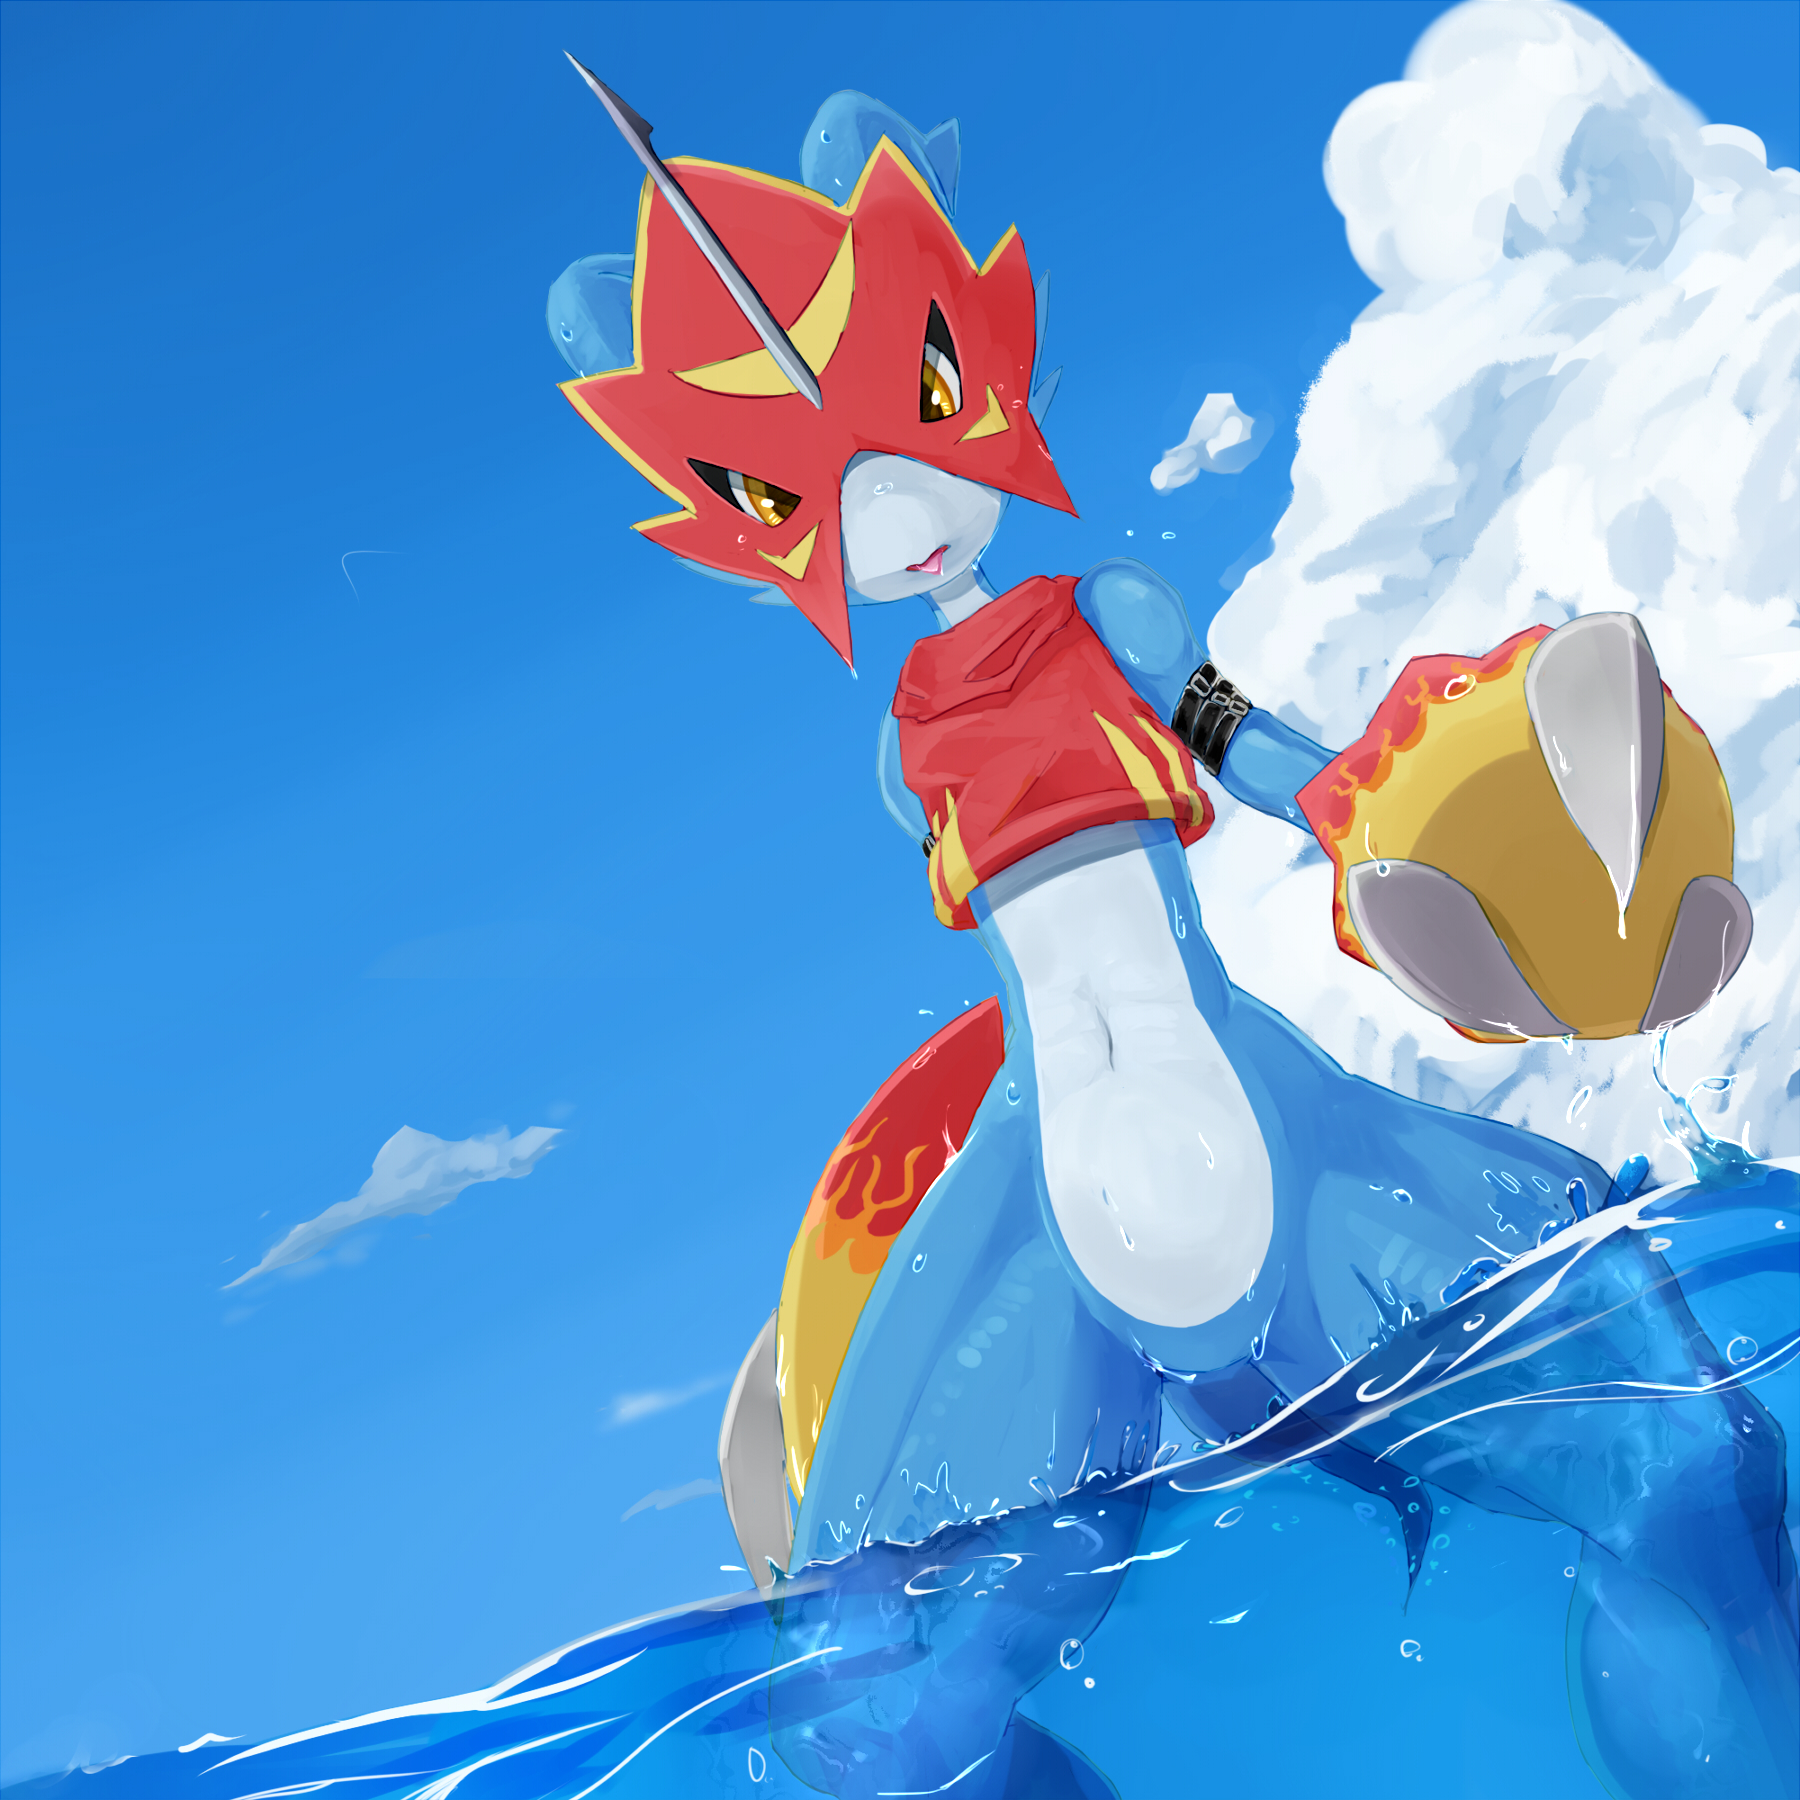 e926 2012 amber_eyes ambiguous_gender anthro armor blue_body claws clothed clothing cloud digimon flamedramon furukara helmet hi_res looking_at_viewer navel outside sky solo spread_legs spreading standing tongue tongue_out topless water wet white_body